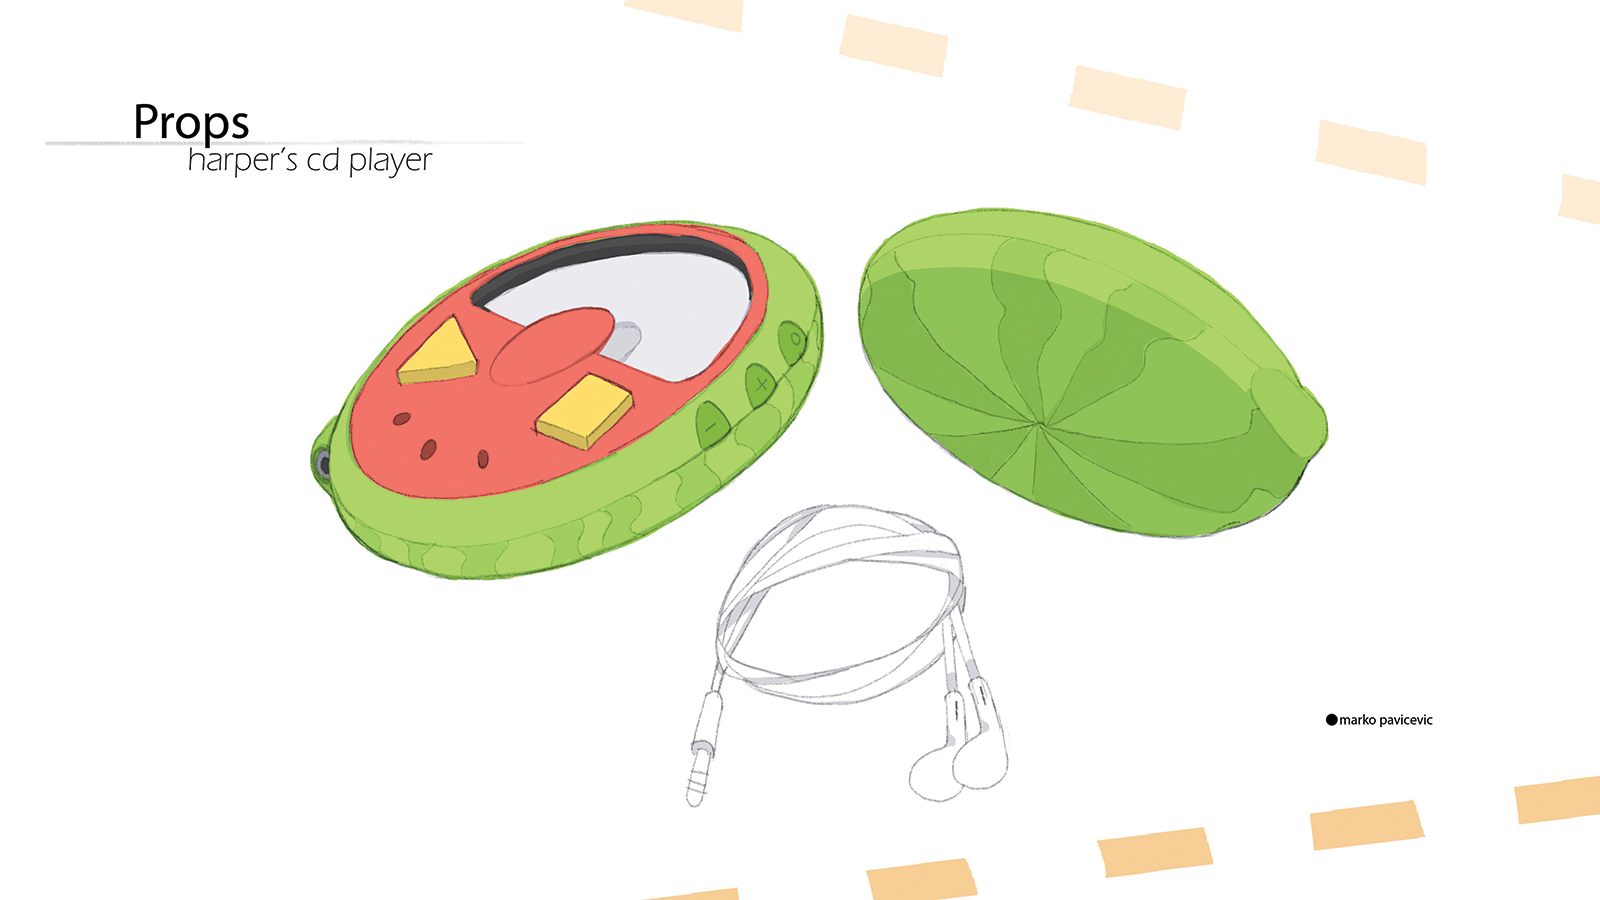 Sketch of a child's portable CD player.